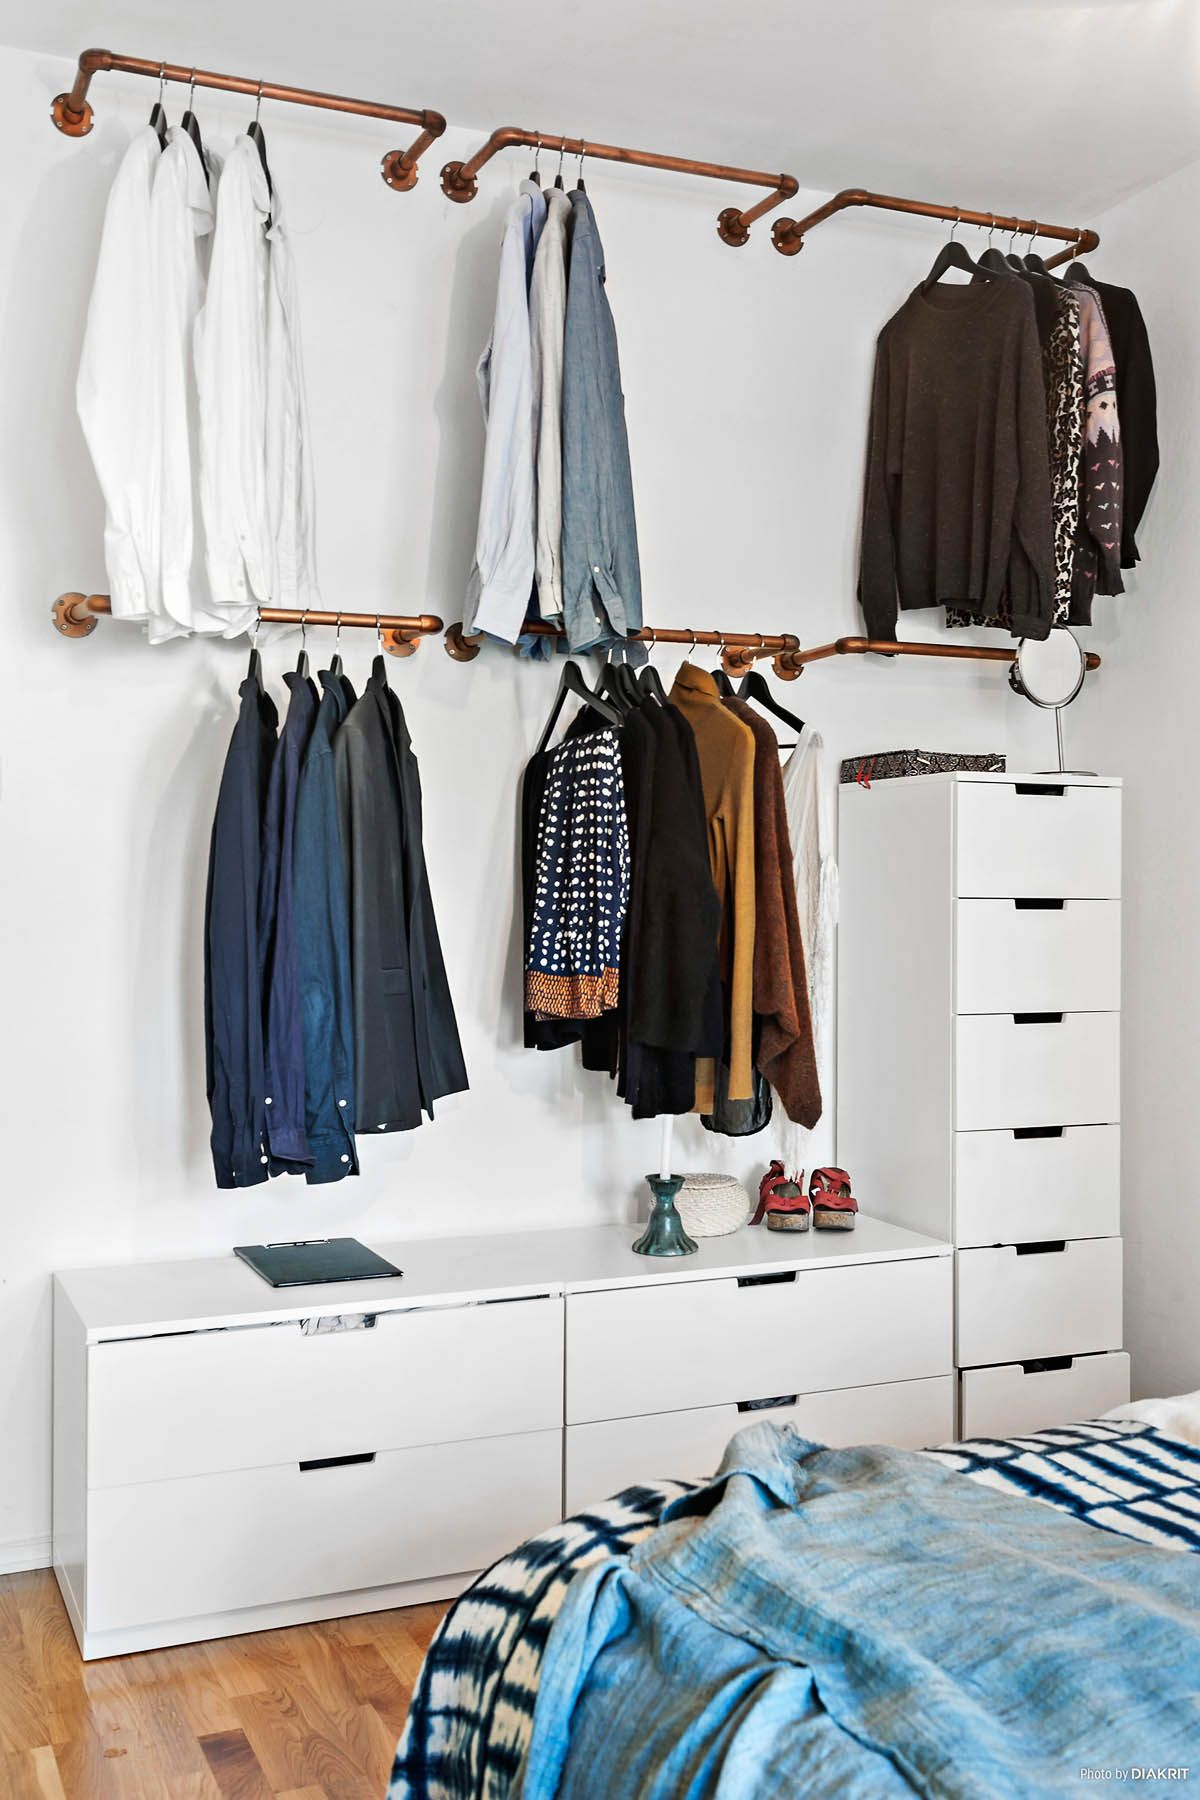 Un Cocon Familial Hors Du Banal   PLANETE DECO A Homes World More. Clothes  Rack BedroomPipe ...